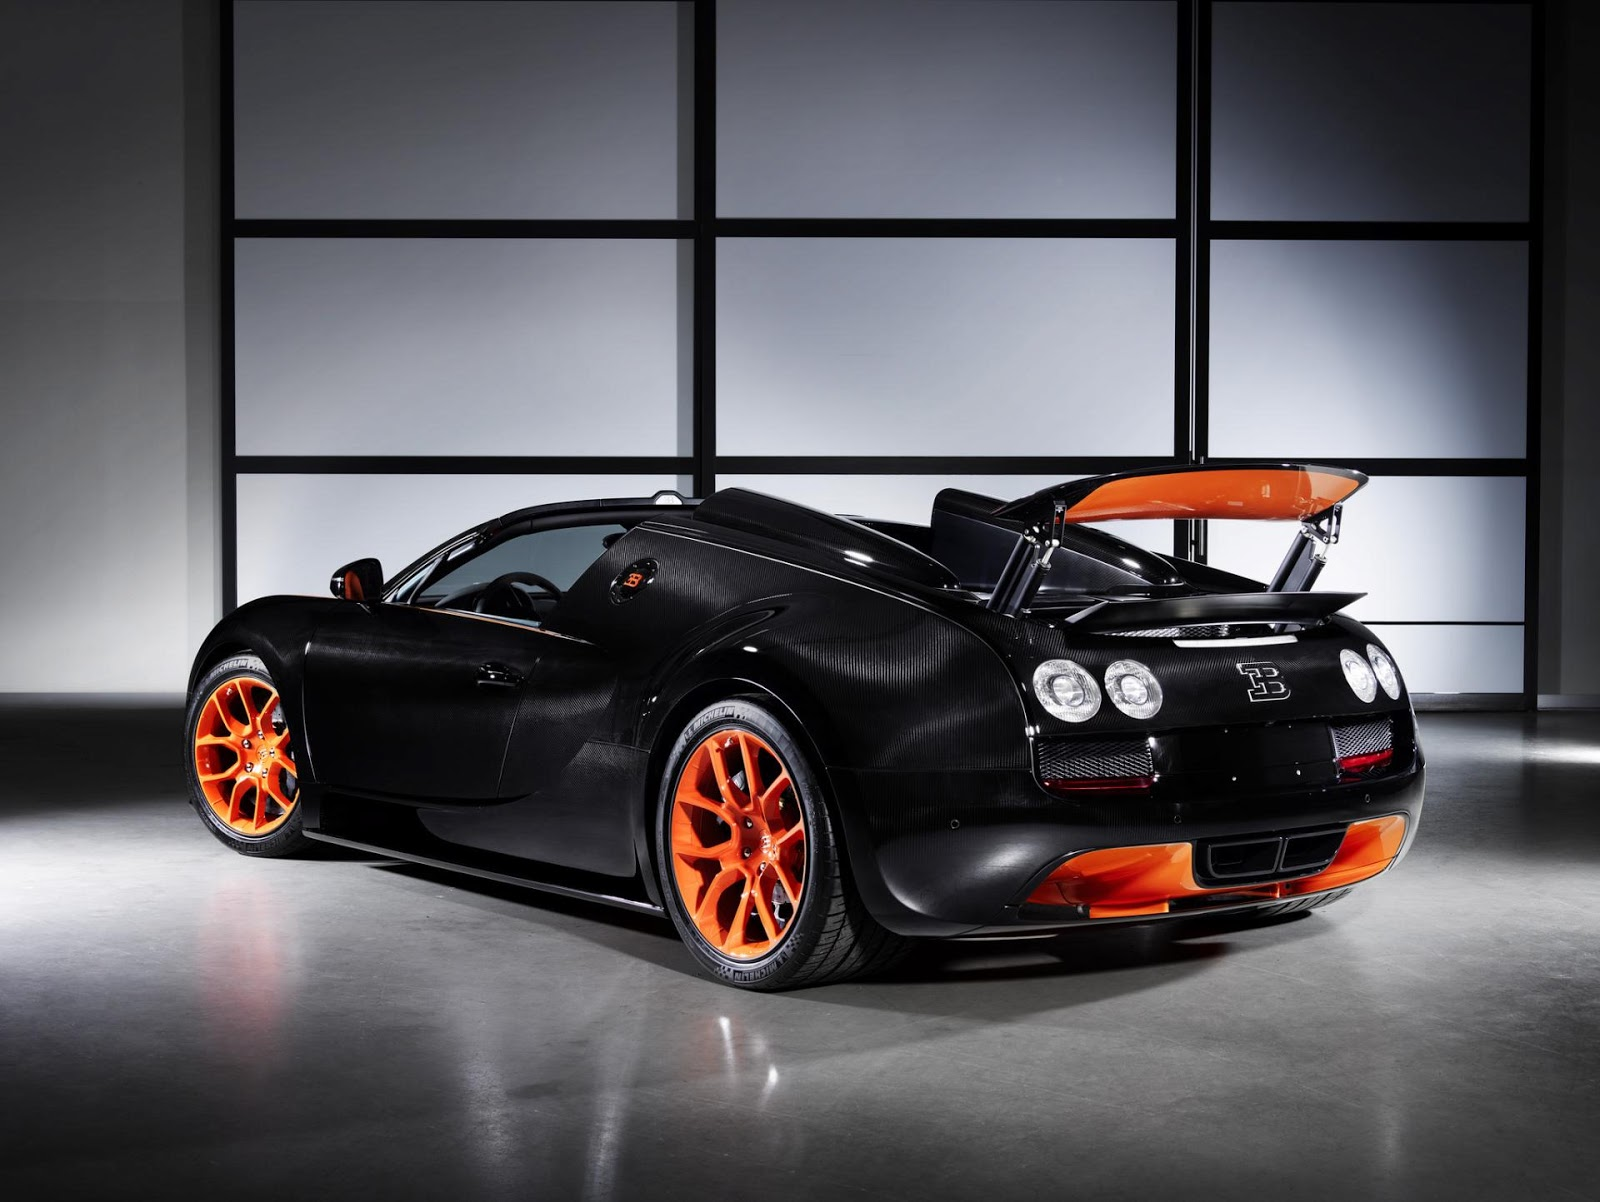 bugatti veyron grand sport vitesse wrc 2013 hottest car. Black Bedroom Furniture Sets. Home Design Ideas